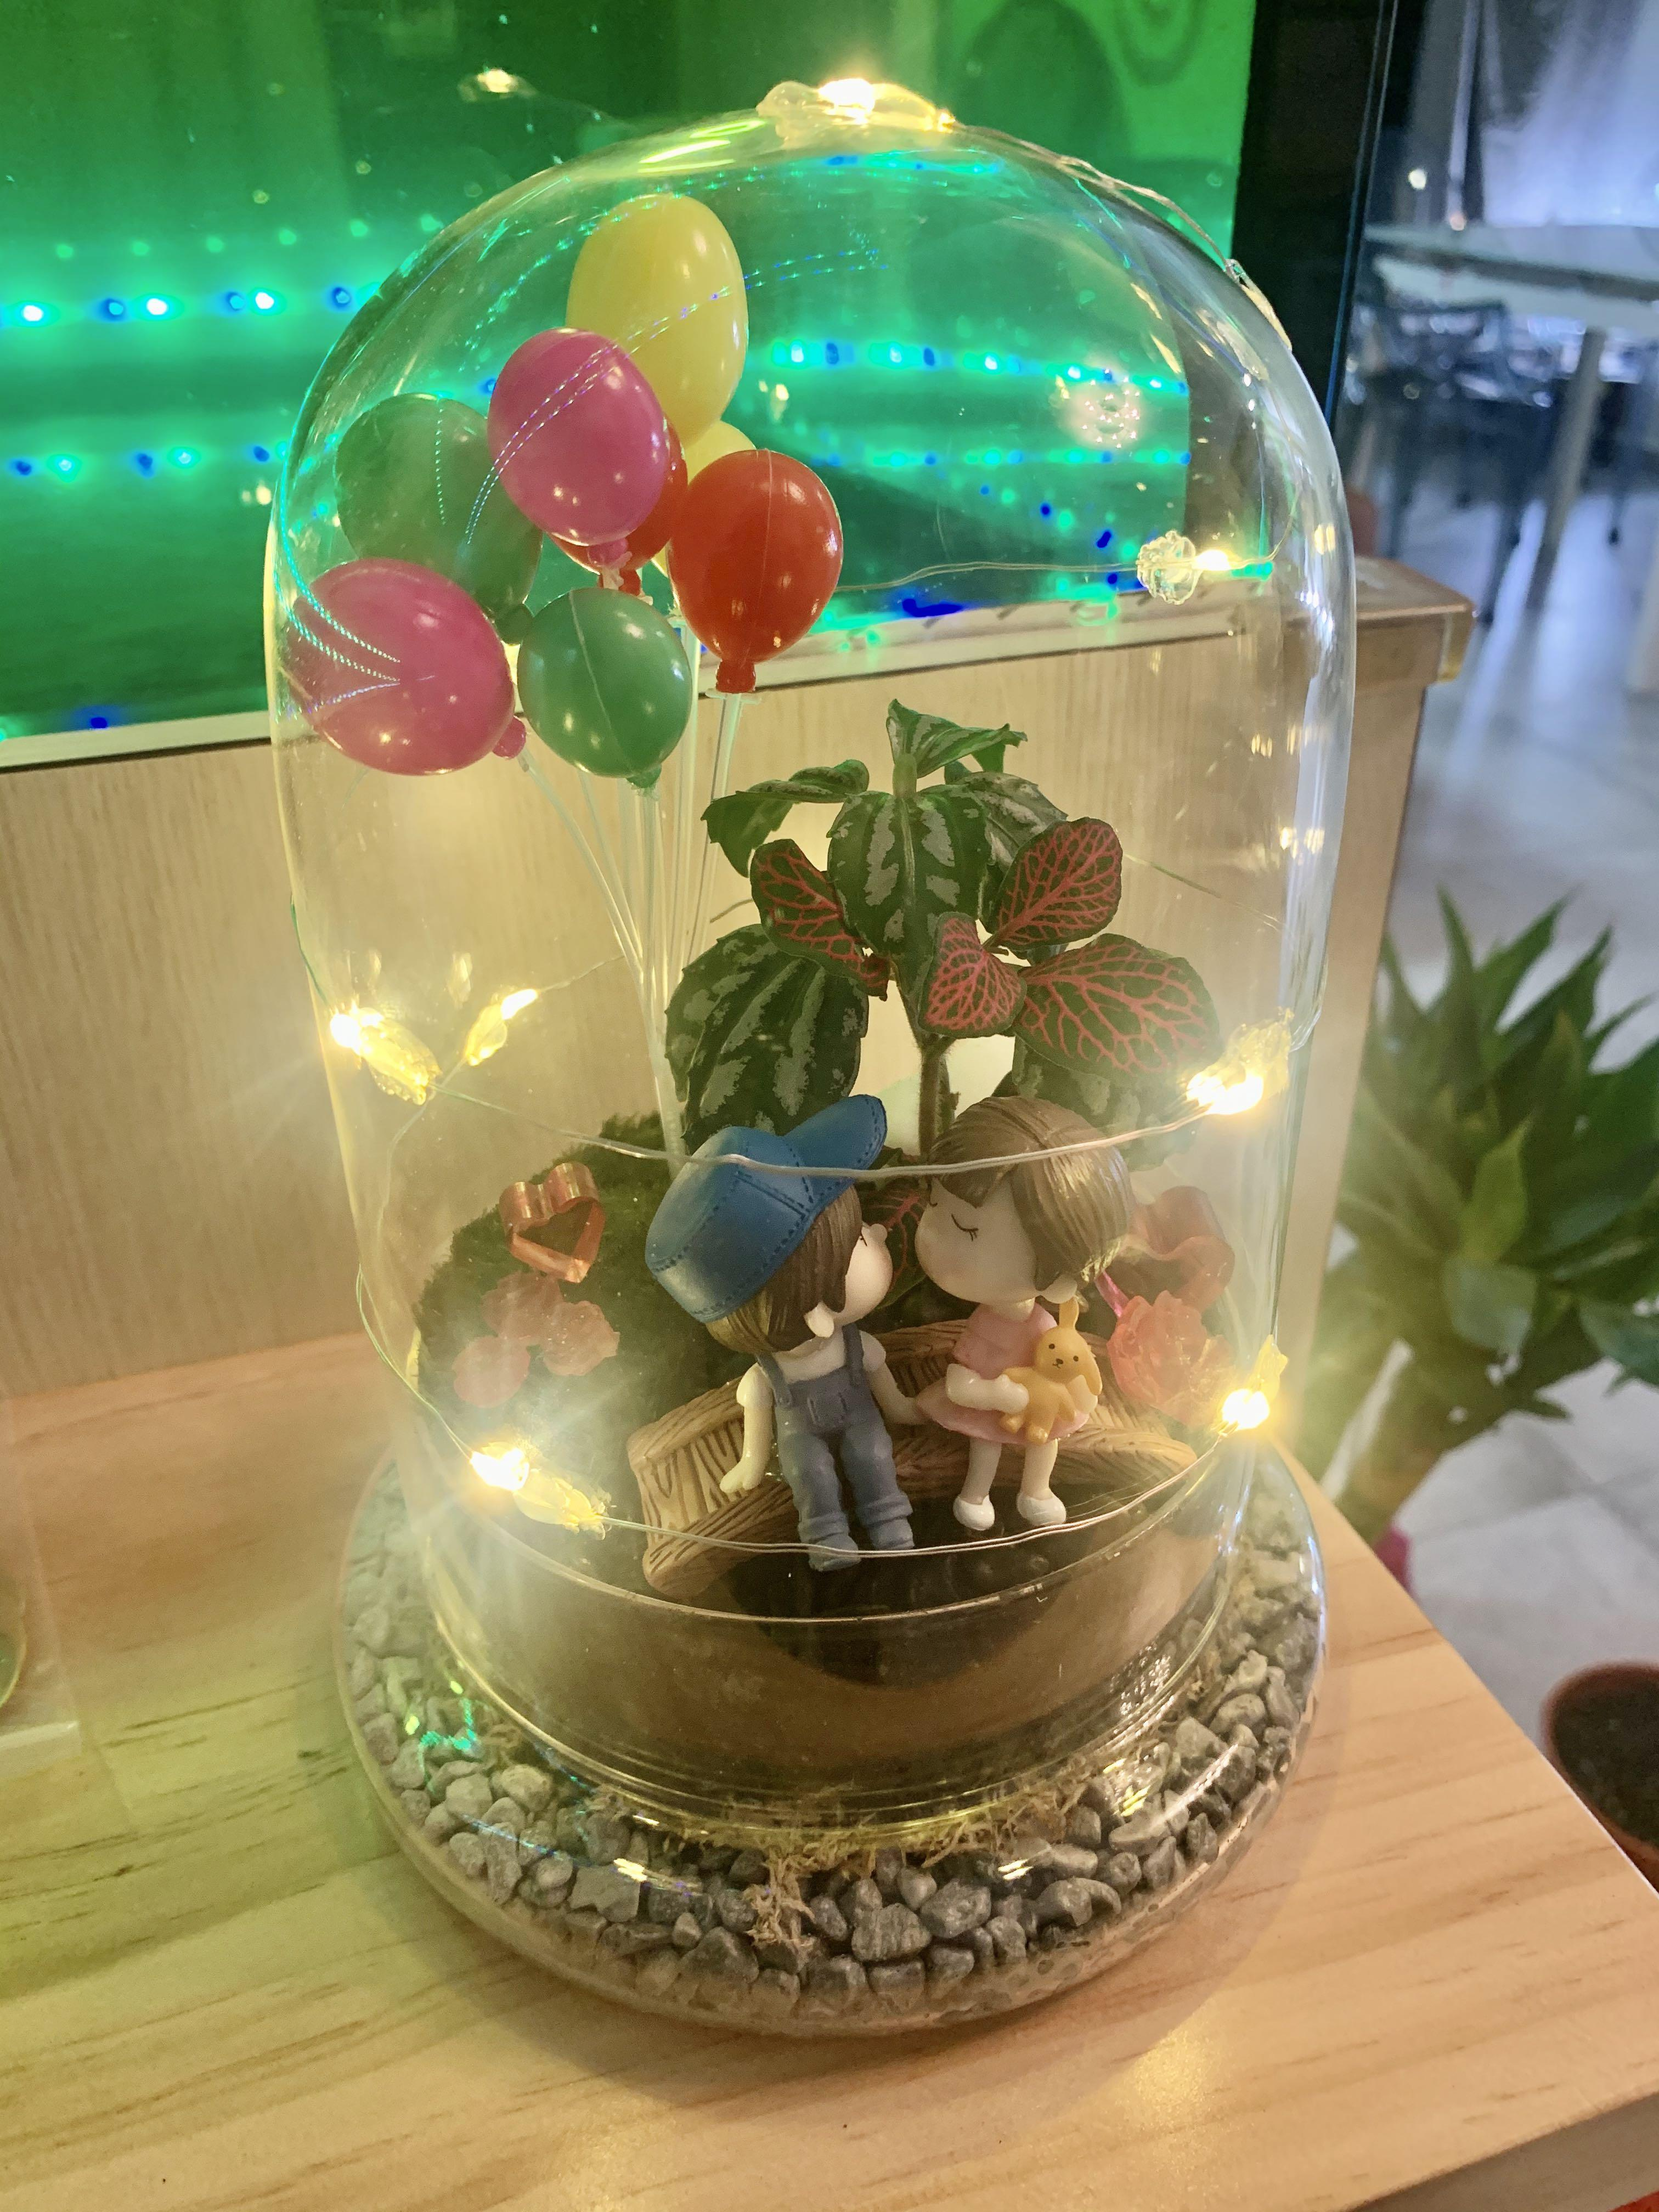 Couple Live Moss Terrarium With Fairytale Lights And Handmade Resin Figurines Gardening Plants On Carousell